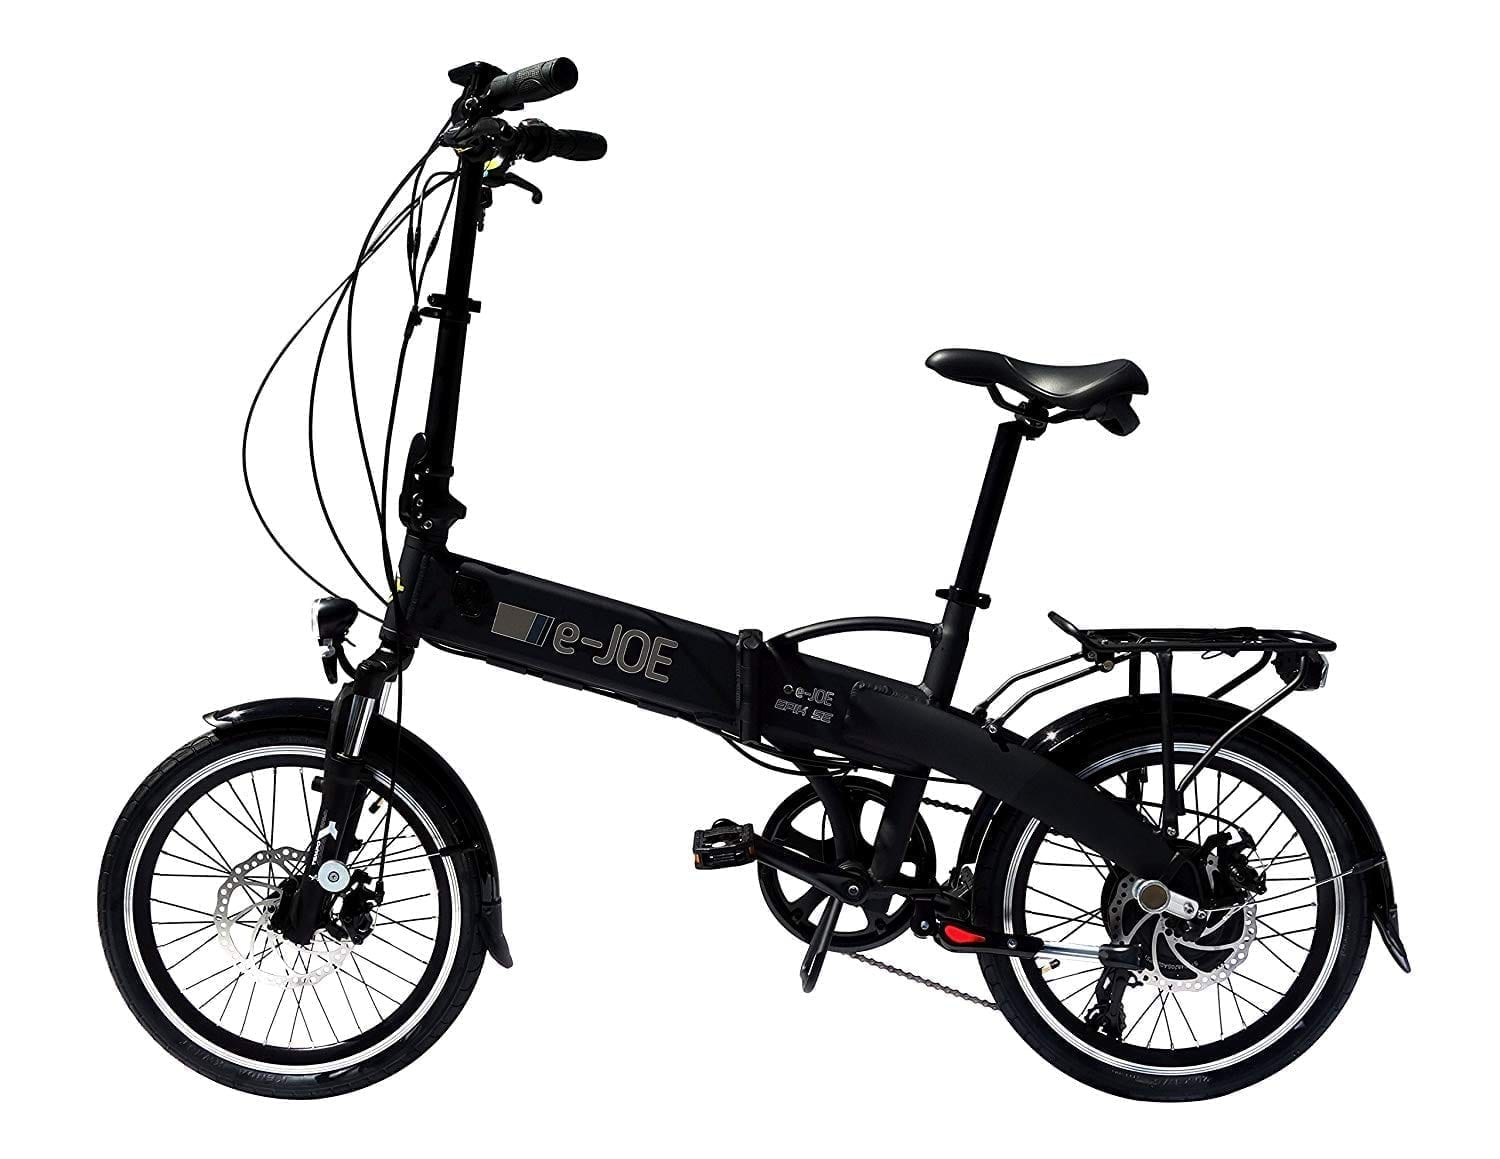 e-JOE 2018 EPIK SE Sport Edition Electric Folding Bike